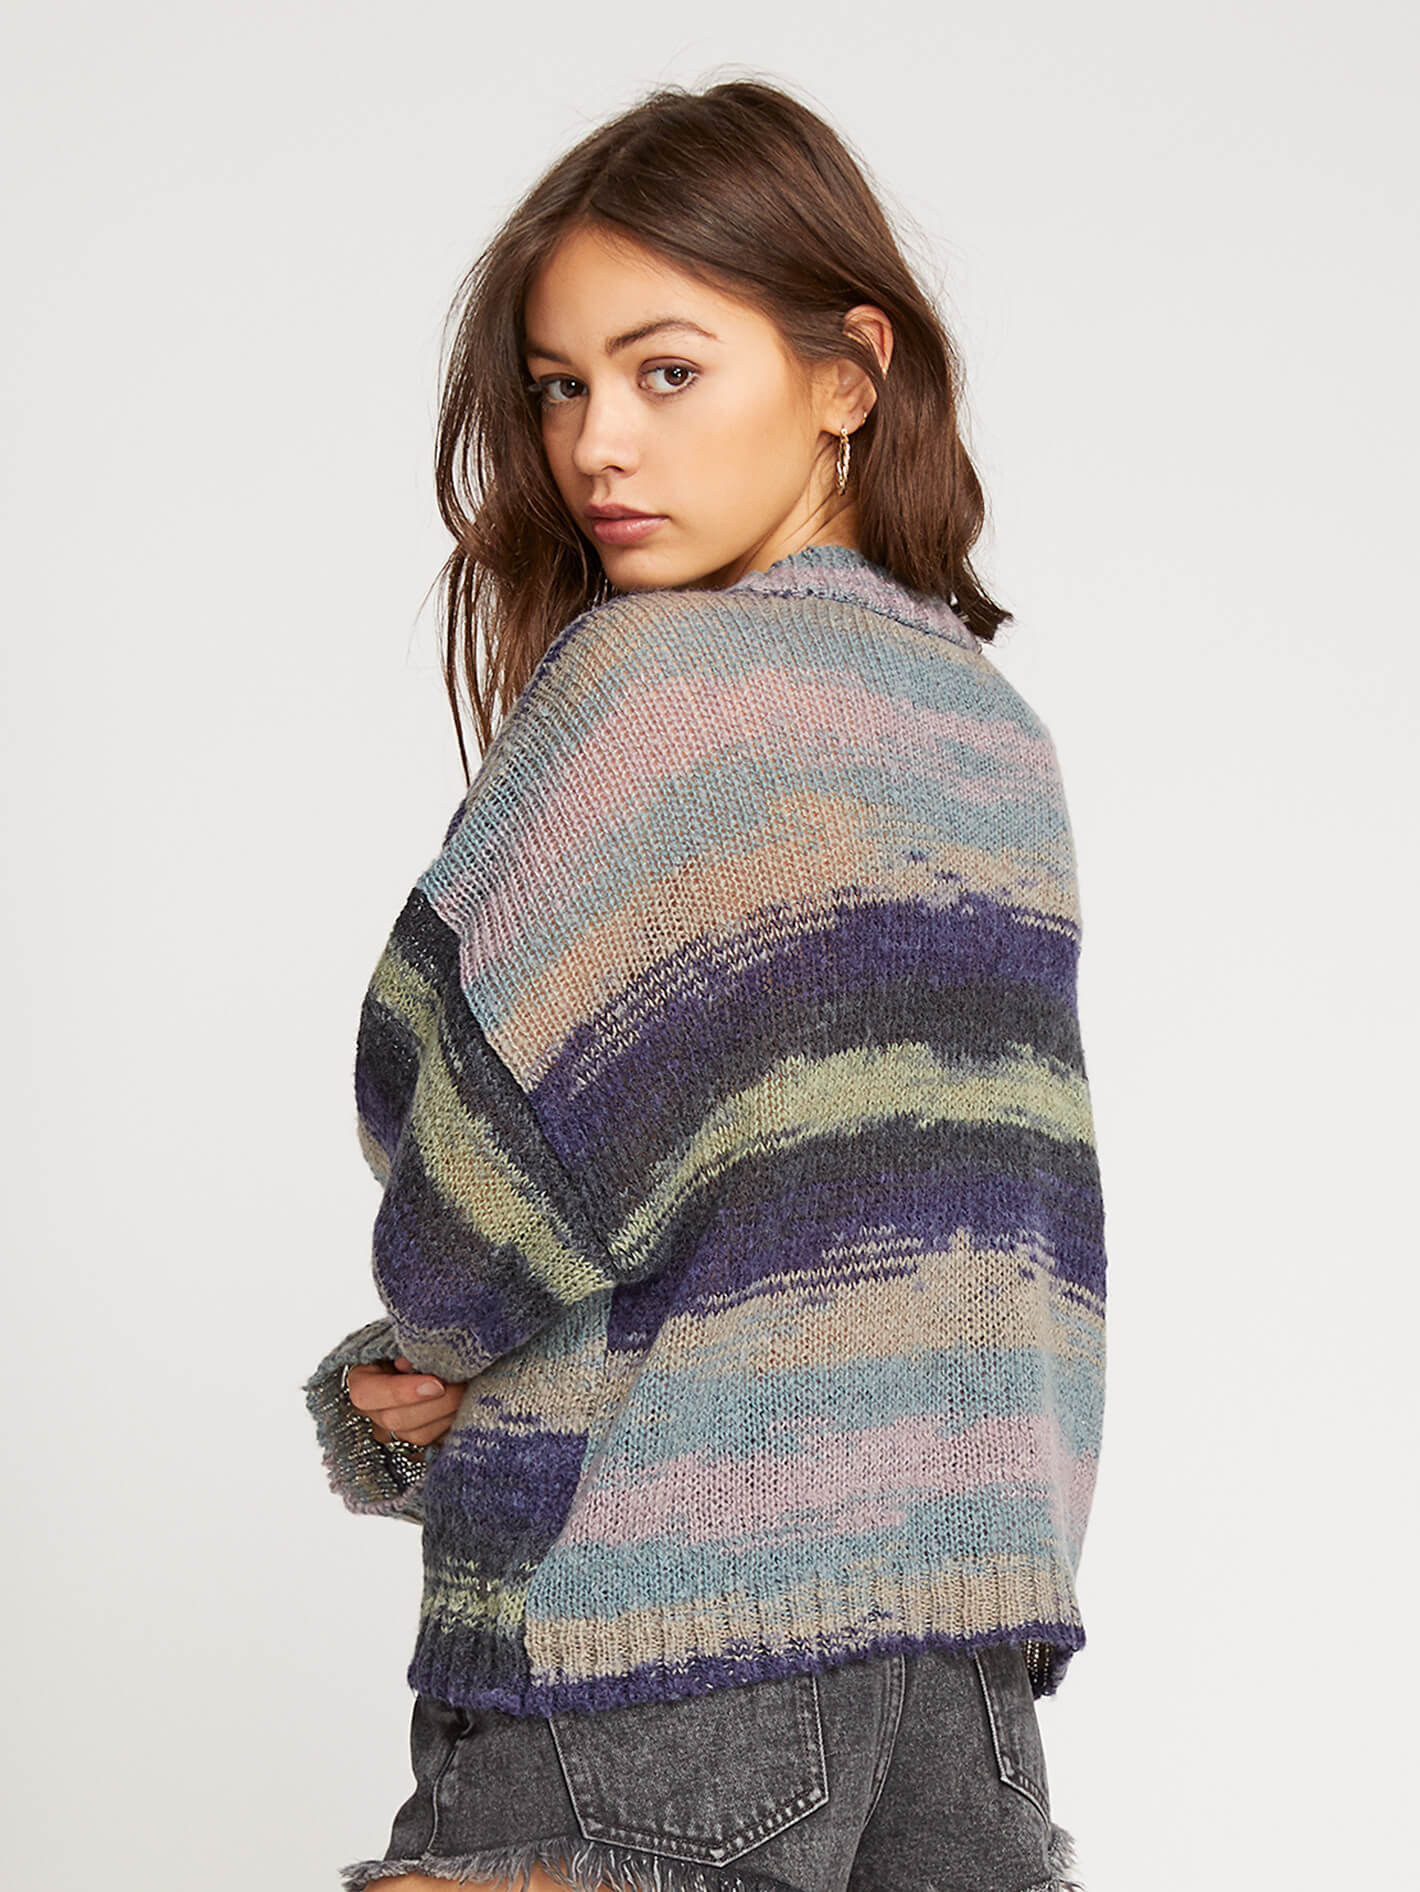 043ce0d825 Daze Go By Sweater in ASSORTED COLORS - Alternative View